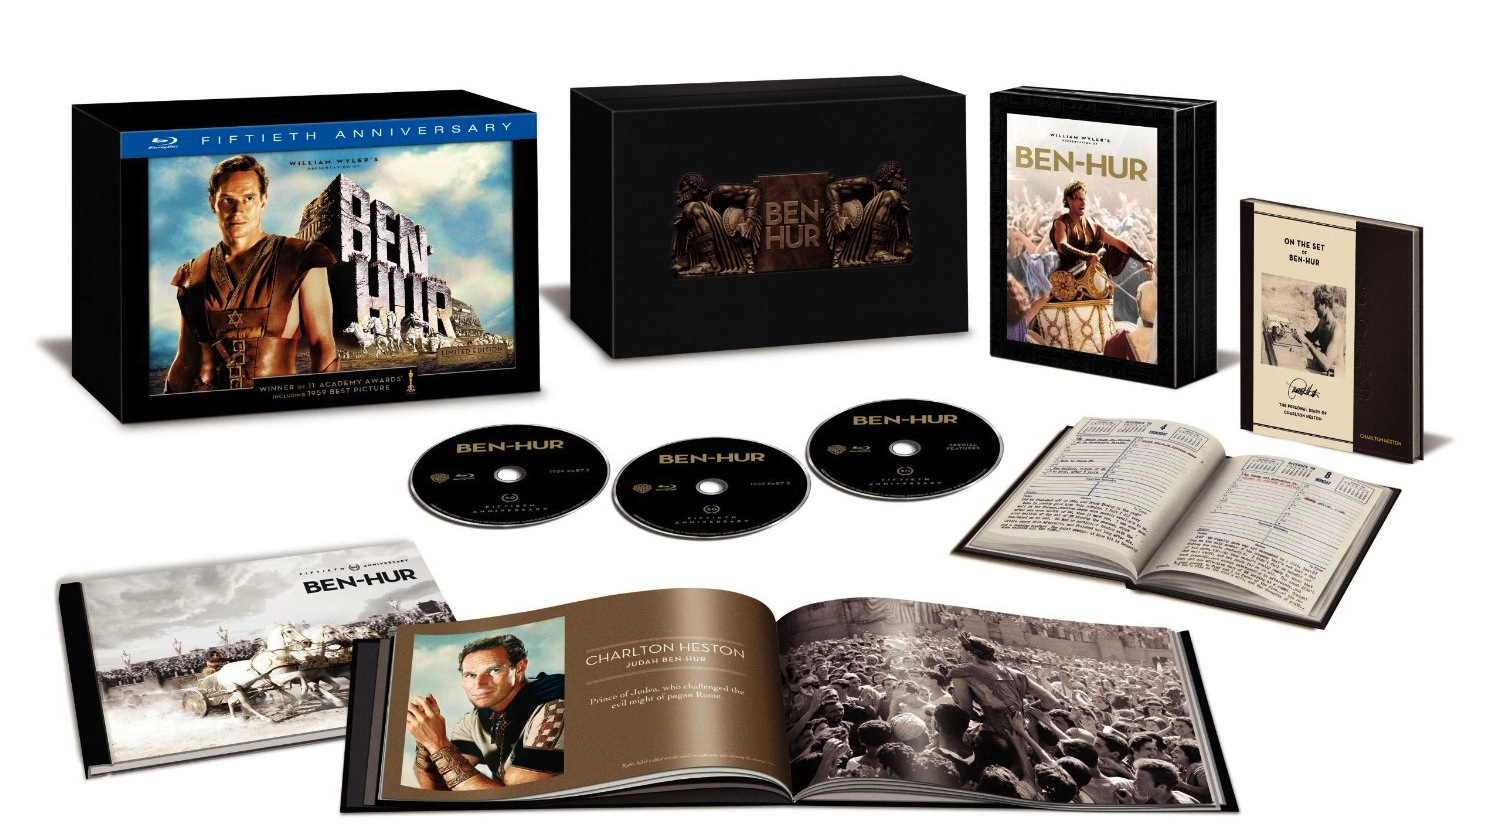 Ben-Hur: 50th Anniversary Ultimate Collector's Edition Blu-ray